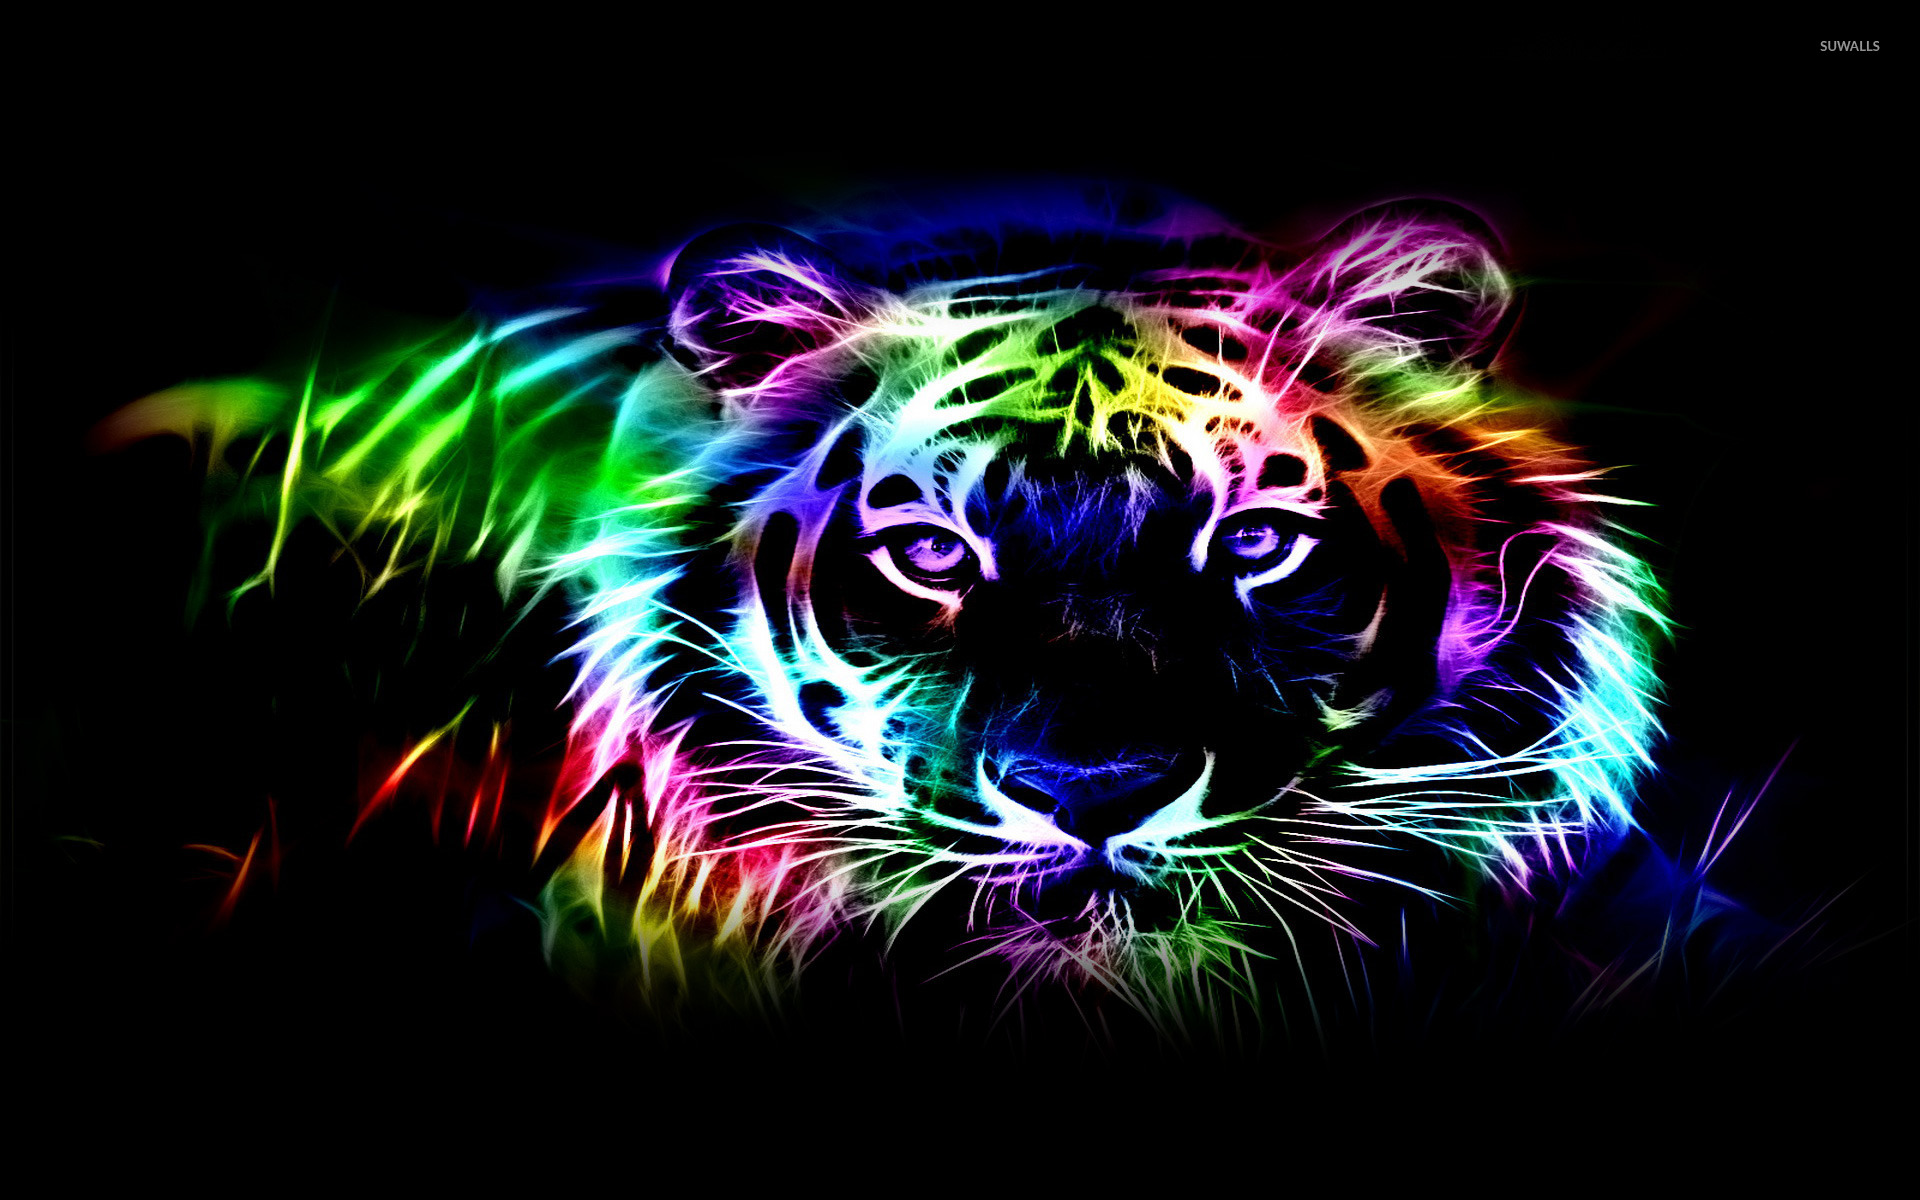 Neon tiger outline wallpaper digital art wallpapers 25440 neon tiger outline wallpaper digital art altavistaventures Choice Image